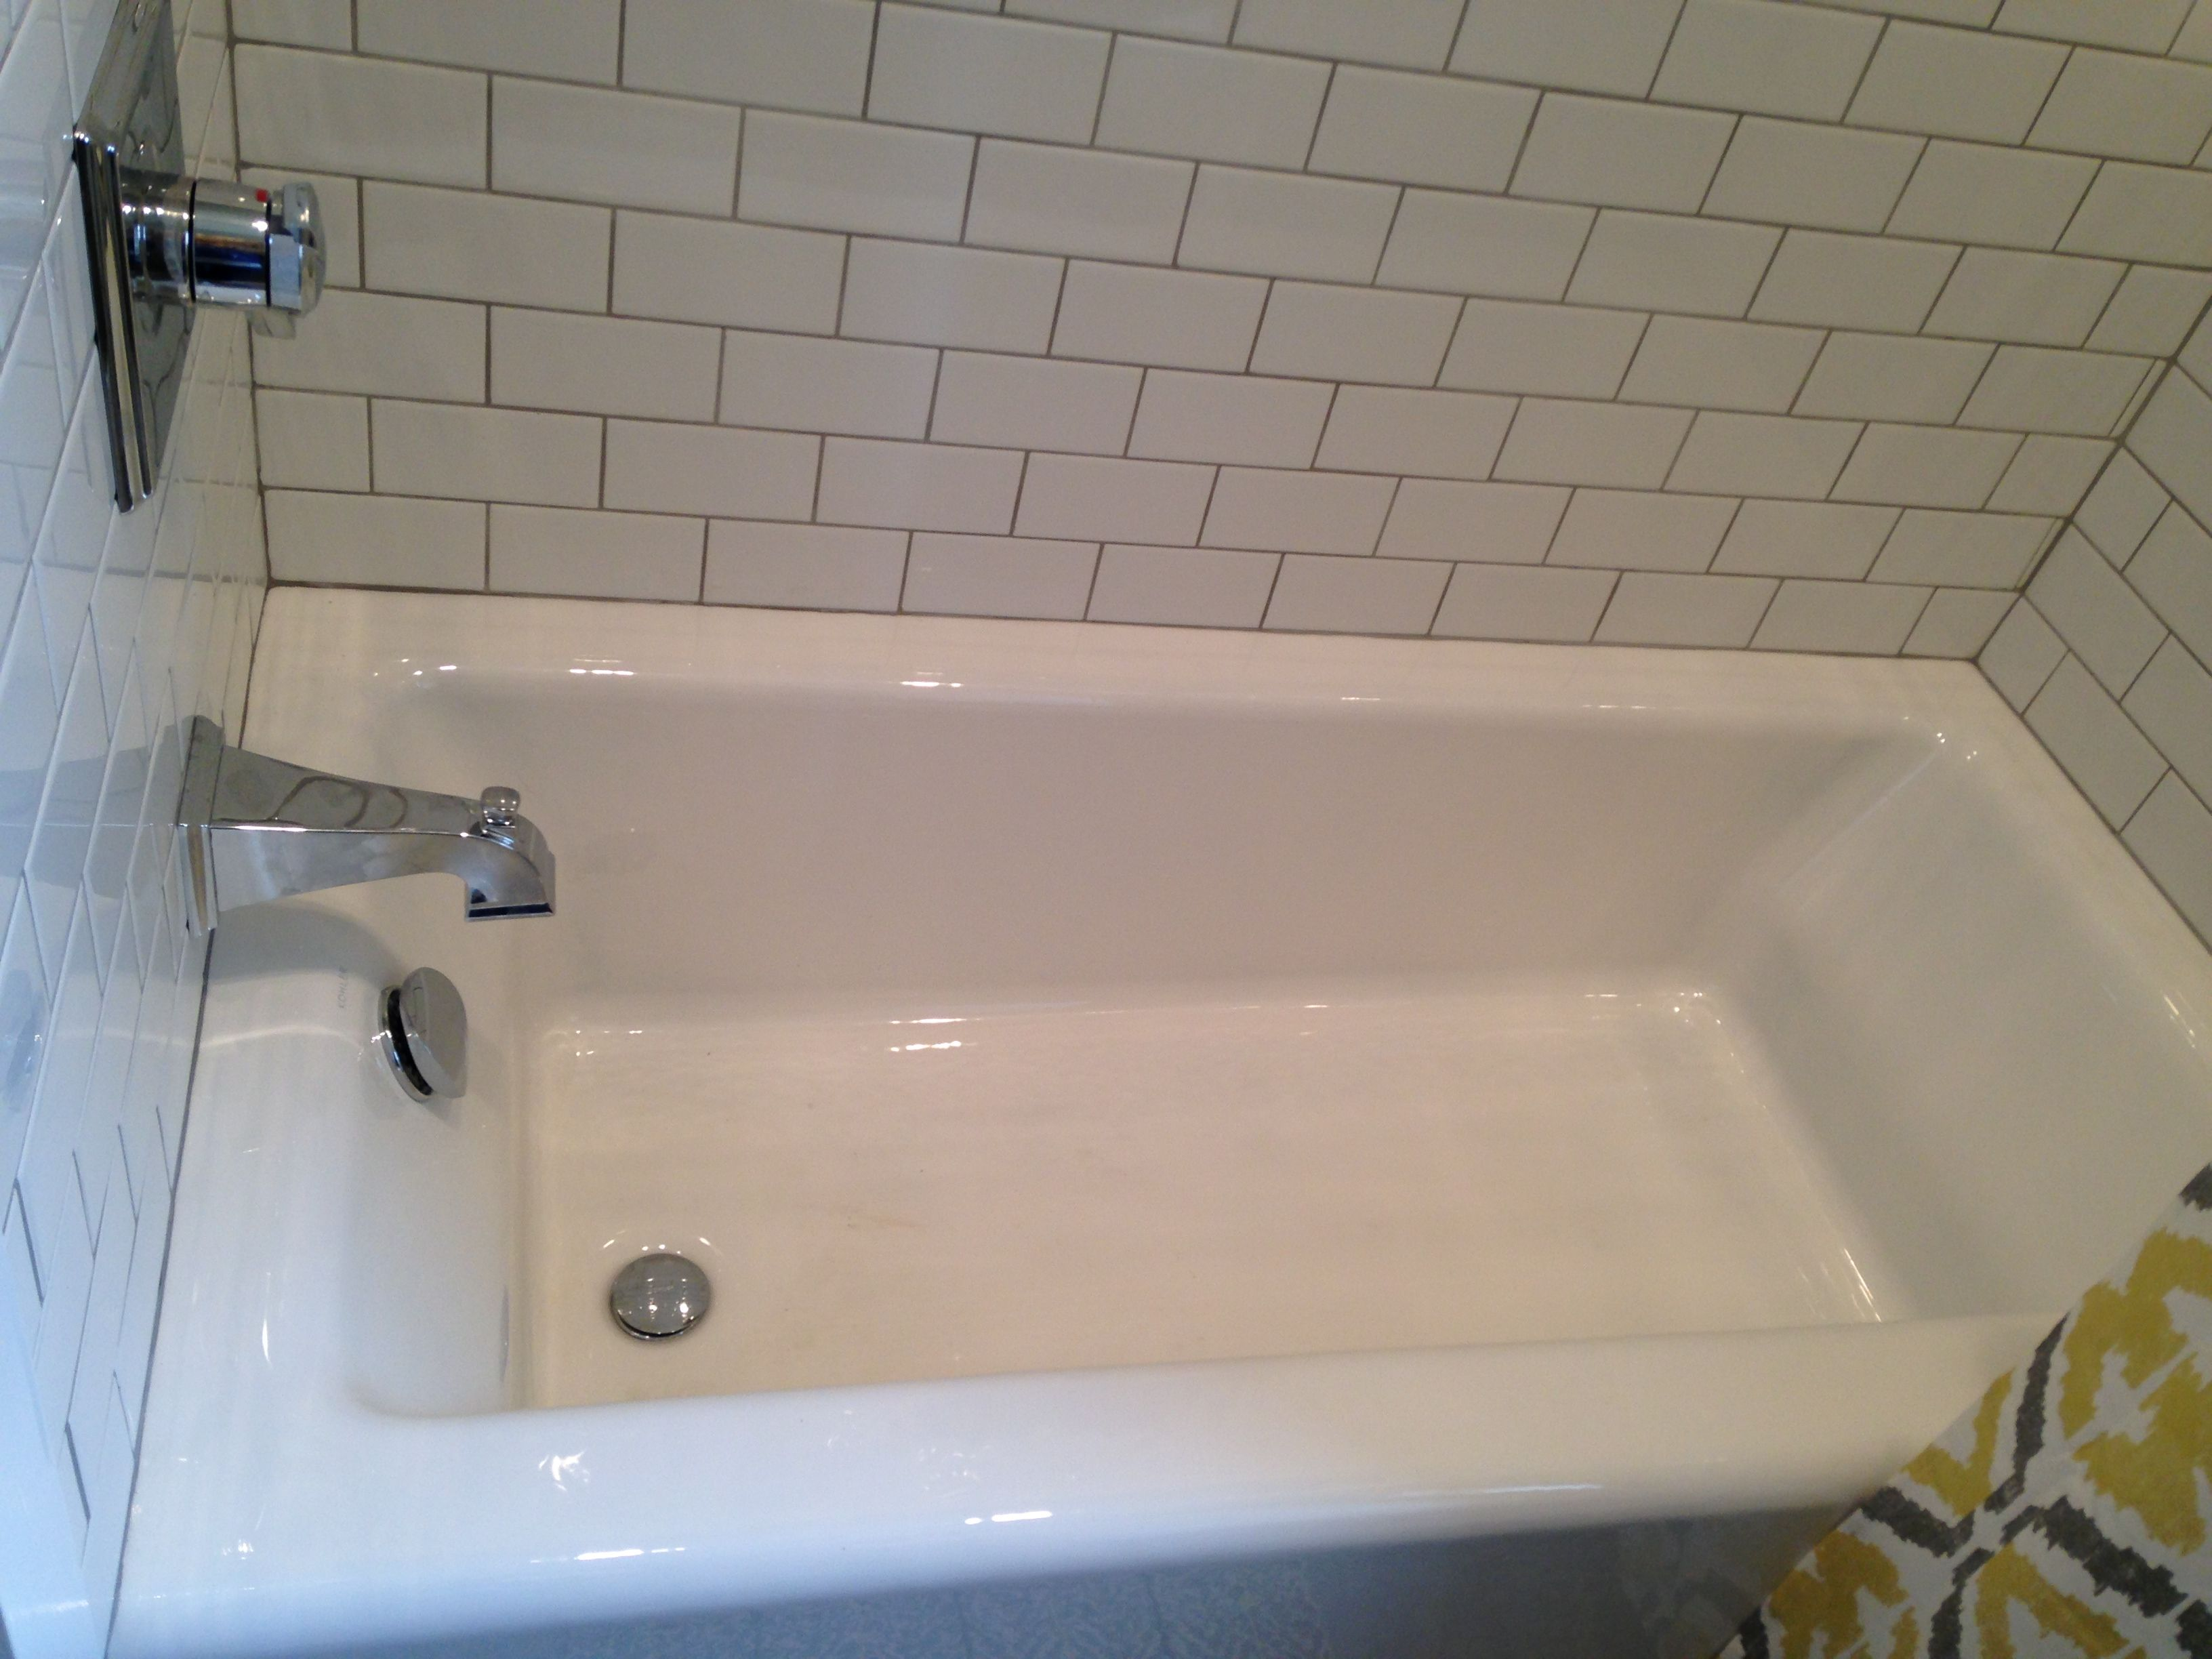 Kohler Cast Iron Tub. White Subway Tiles. Delta Fixtures. Plumbing And  Design By Top Tier, LLC.